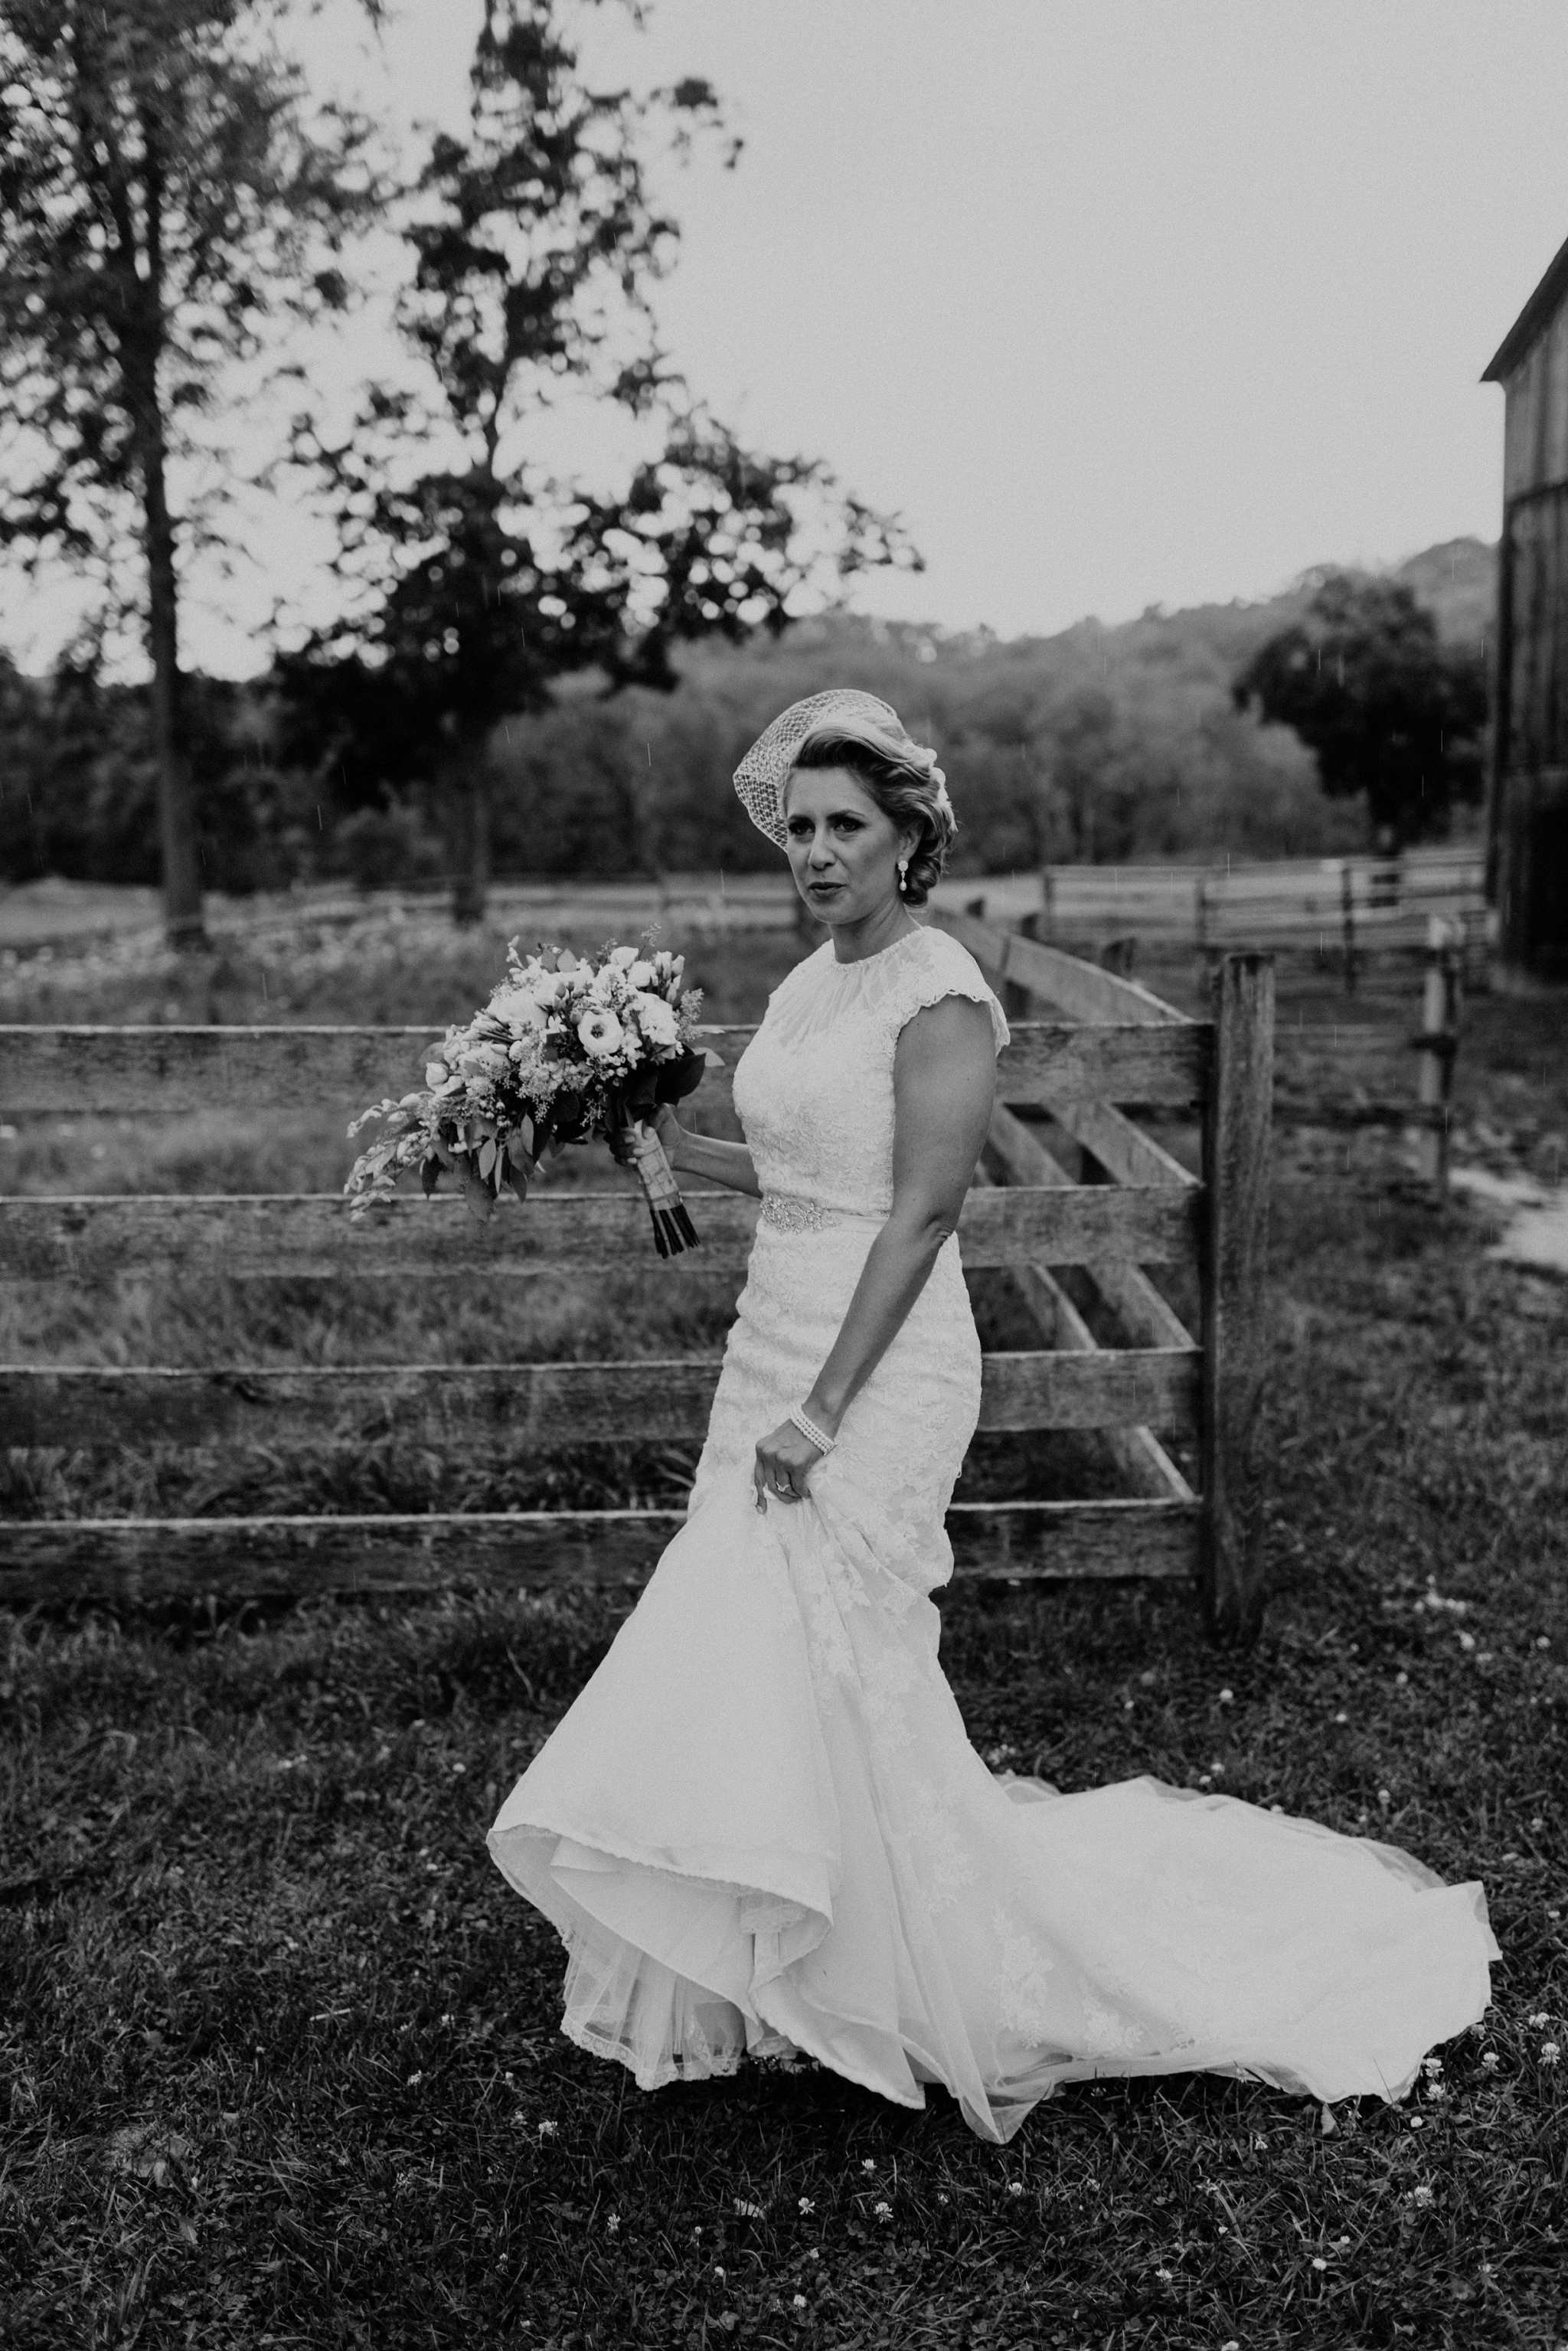 Hines-Hill-Farm-Cuyahoga-Valley-National-Park-Wedding_Emi+Andy_MJPHOTO-119.jpg